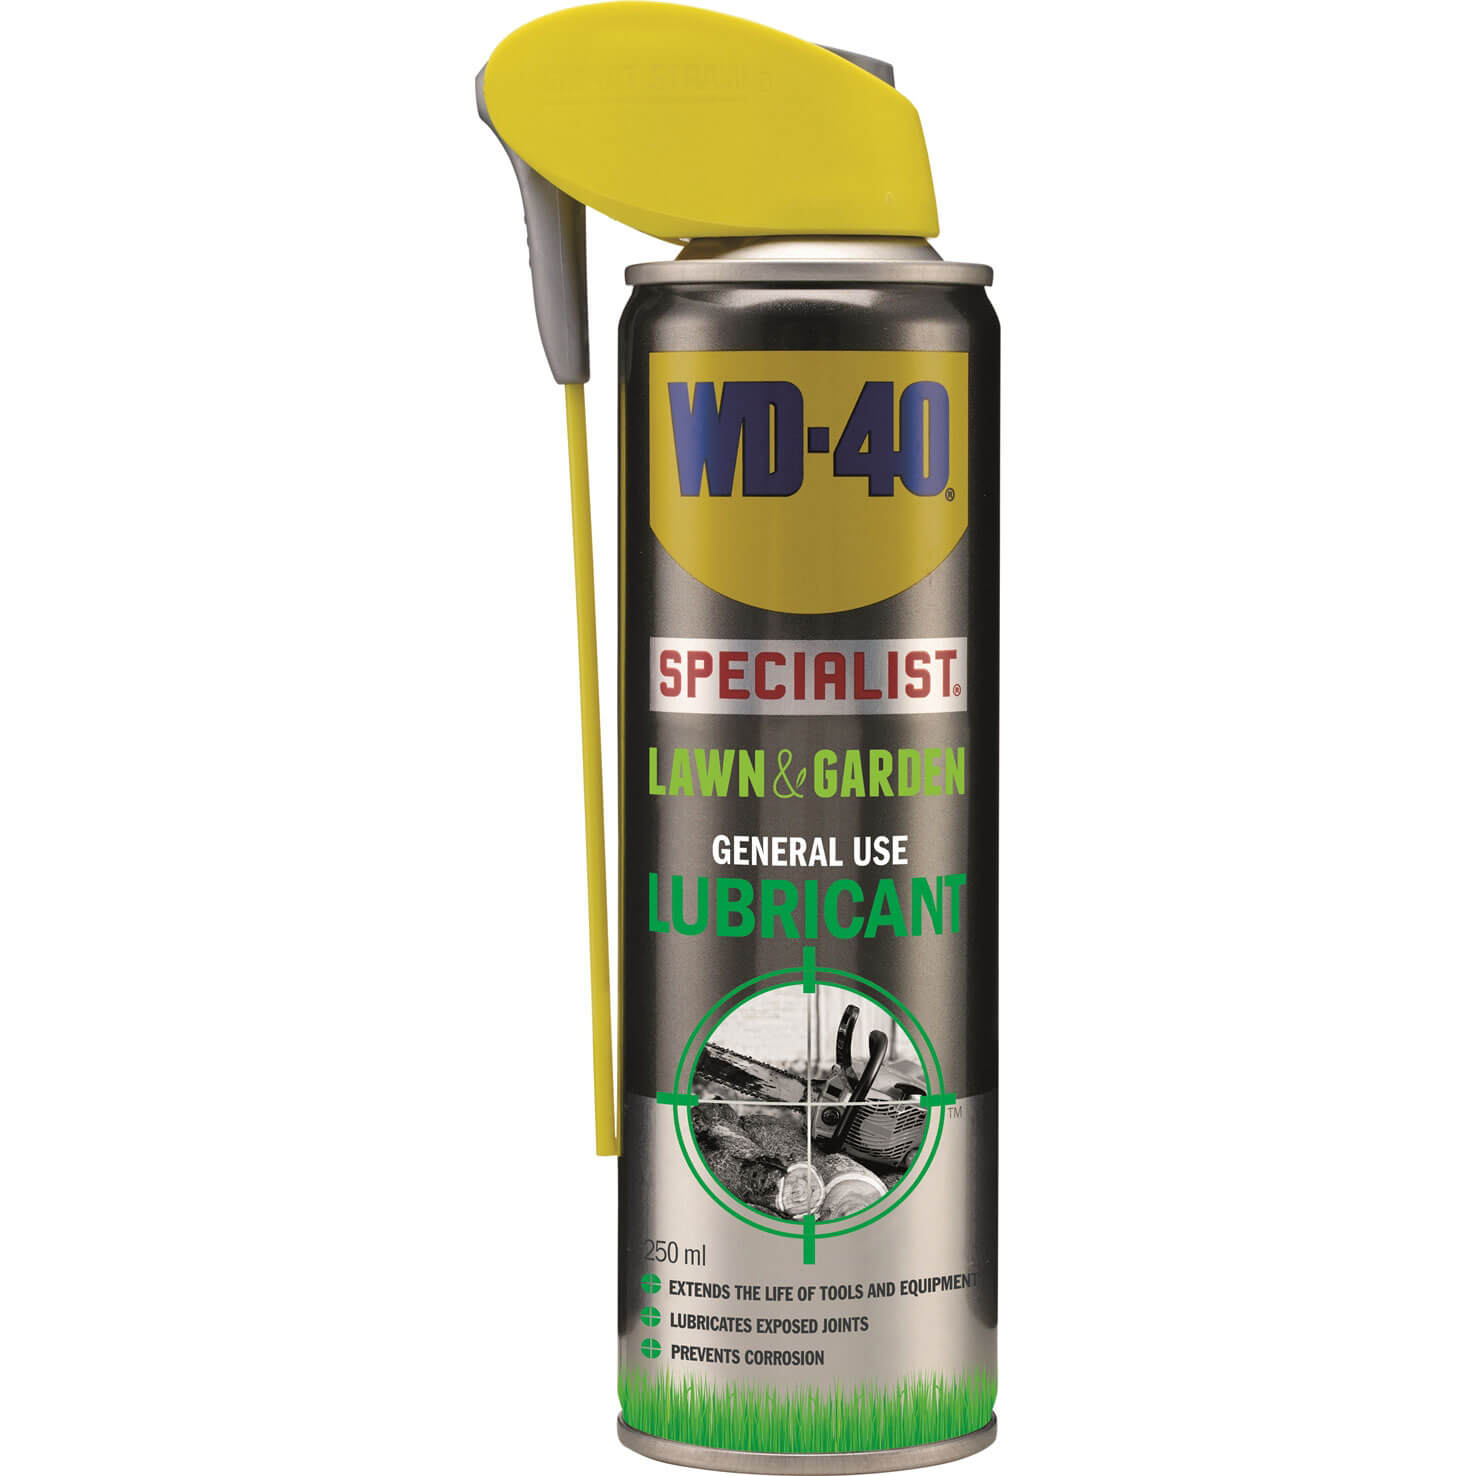 Image of WD40 Lawn & Garden General Use Lubricant 250ml